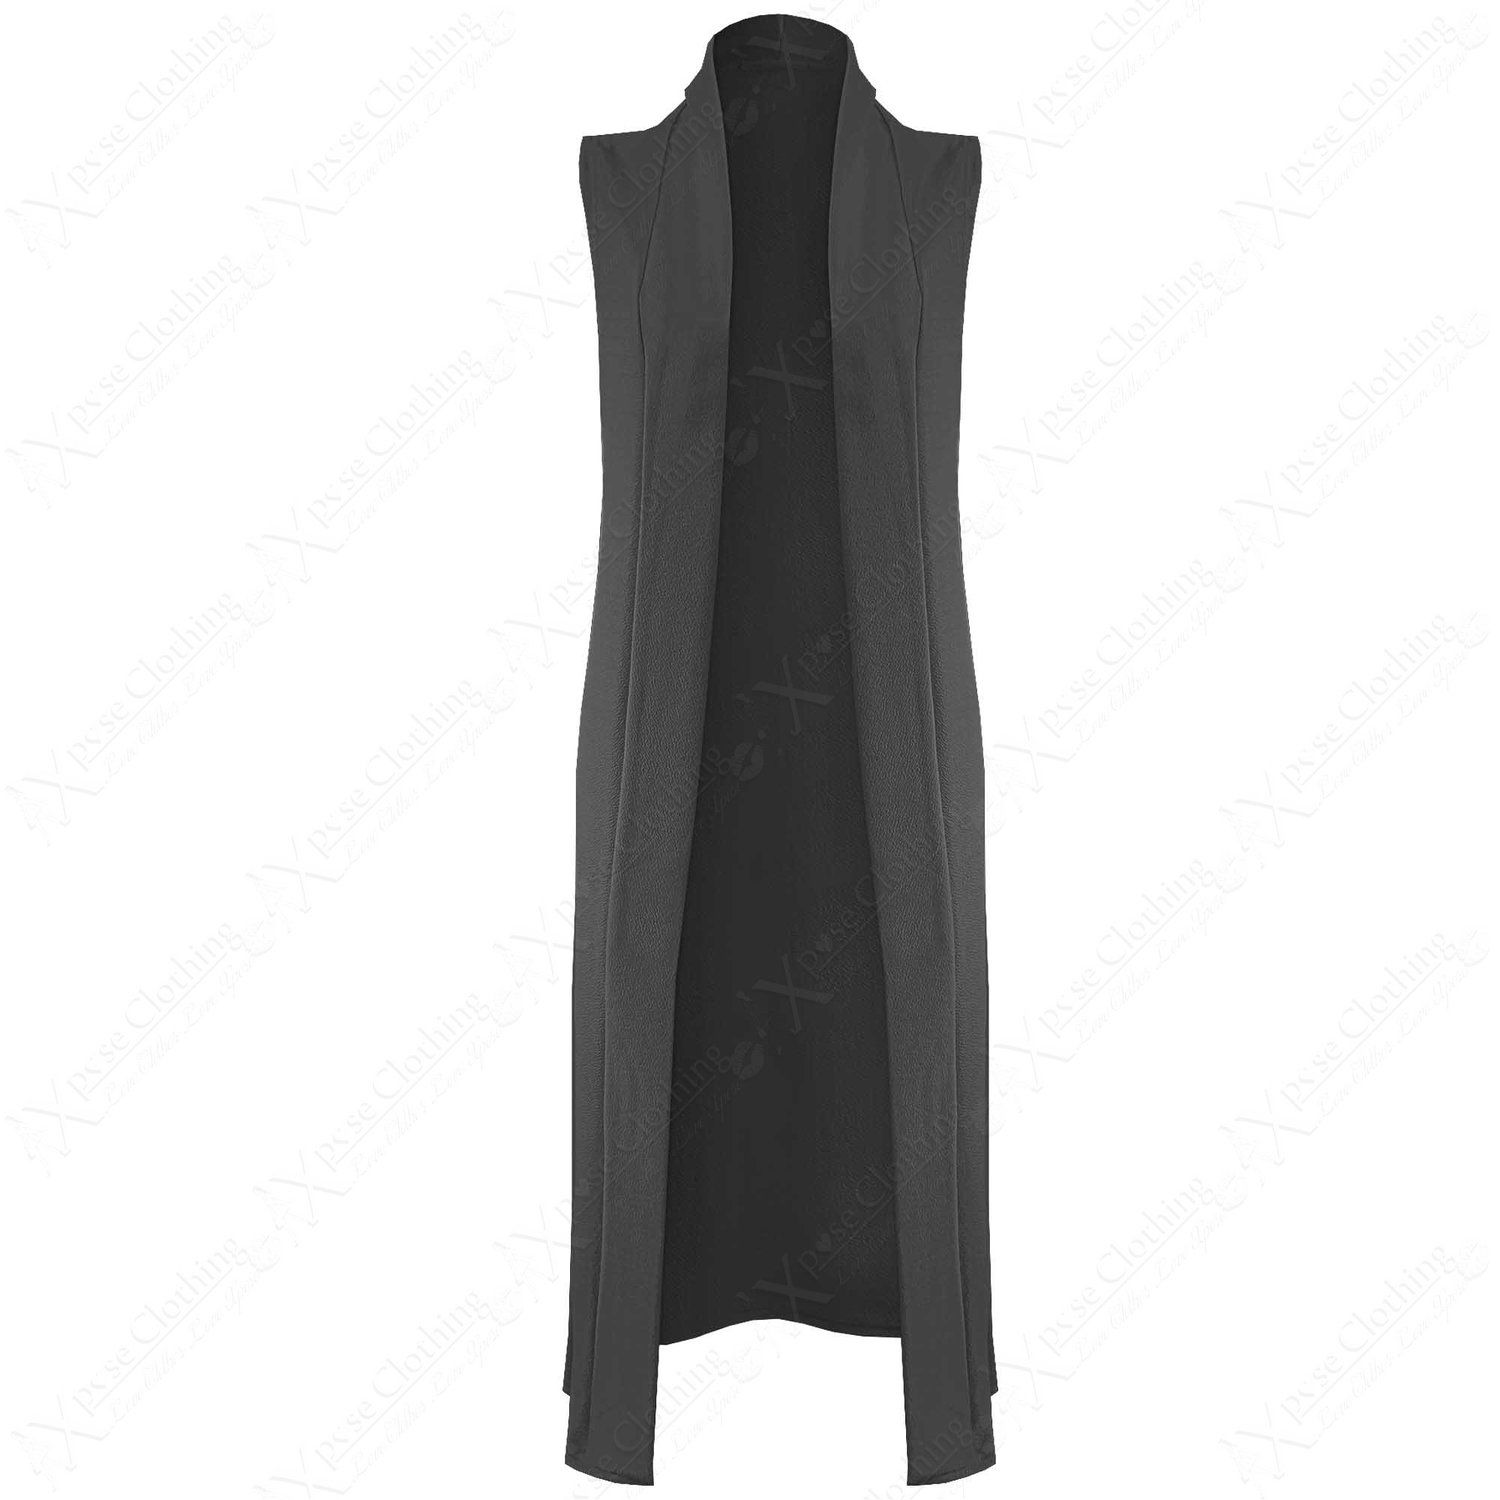 New Womens Long Crepe Fabric Duster Ladies Waistcoat Front Open